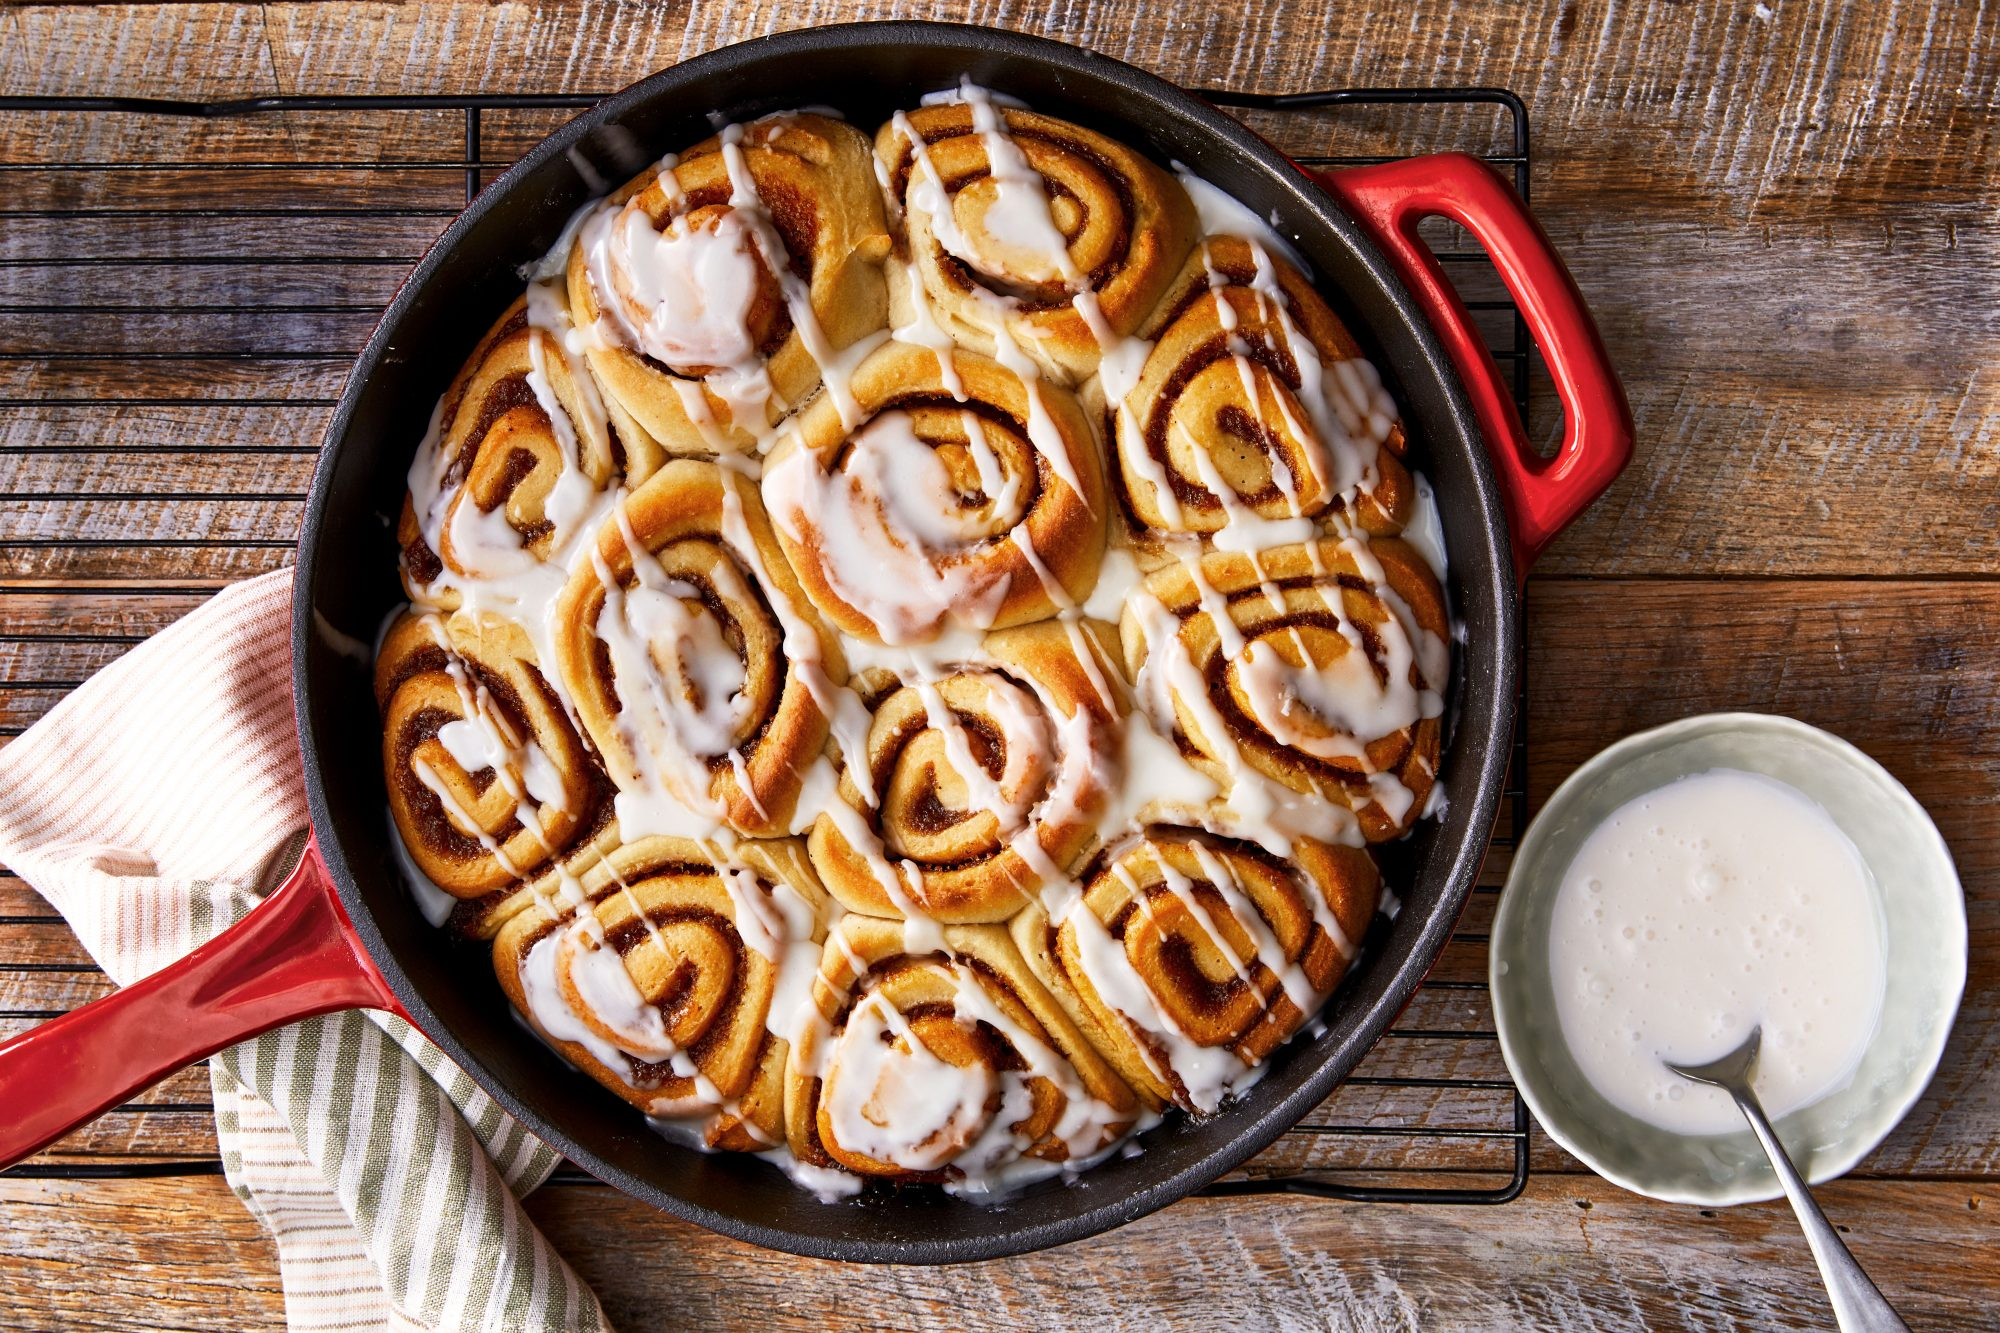 Apple Butter Cinnamon Rolls with Apple Cider Glaze